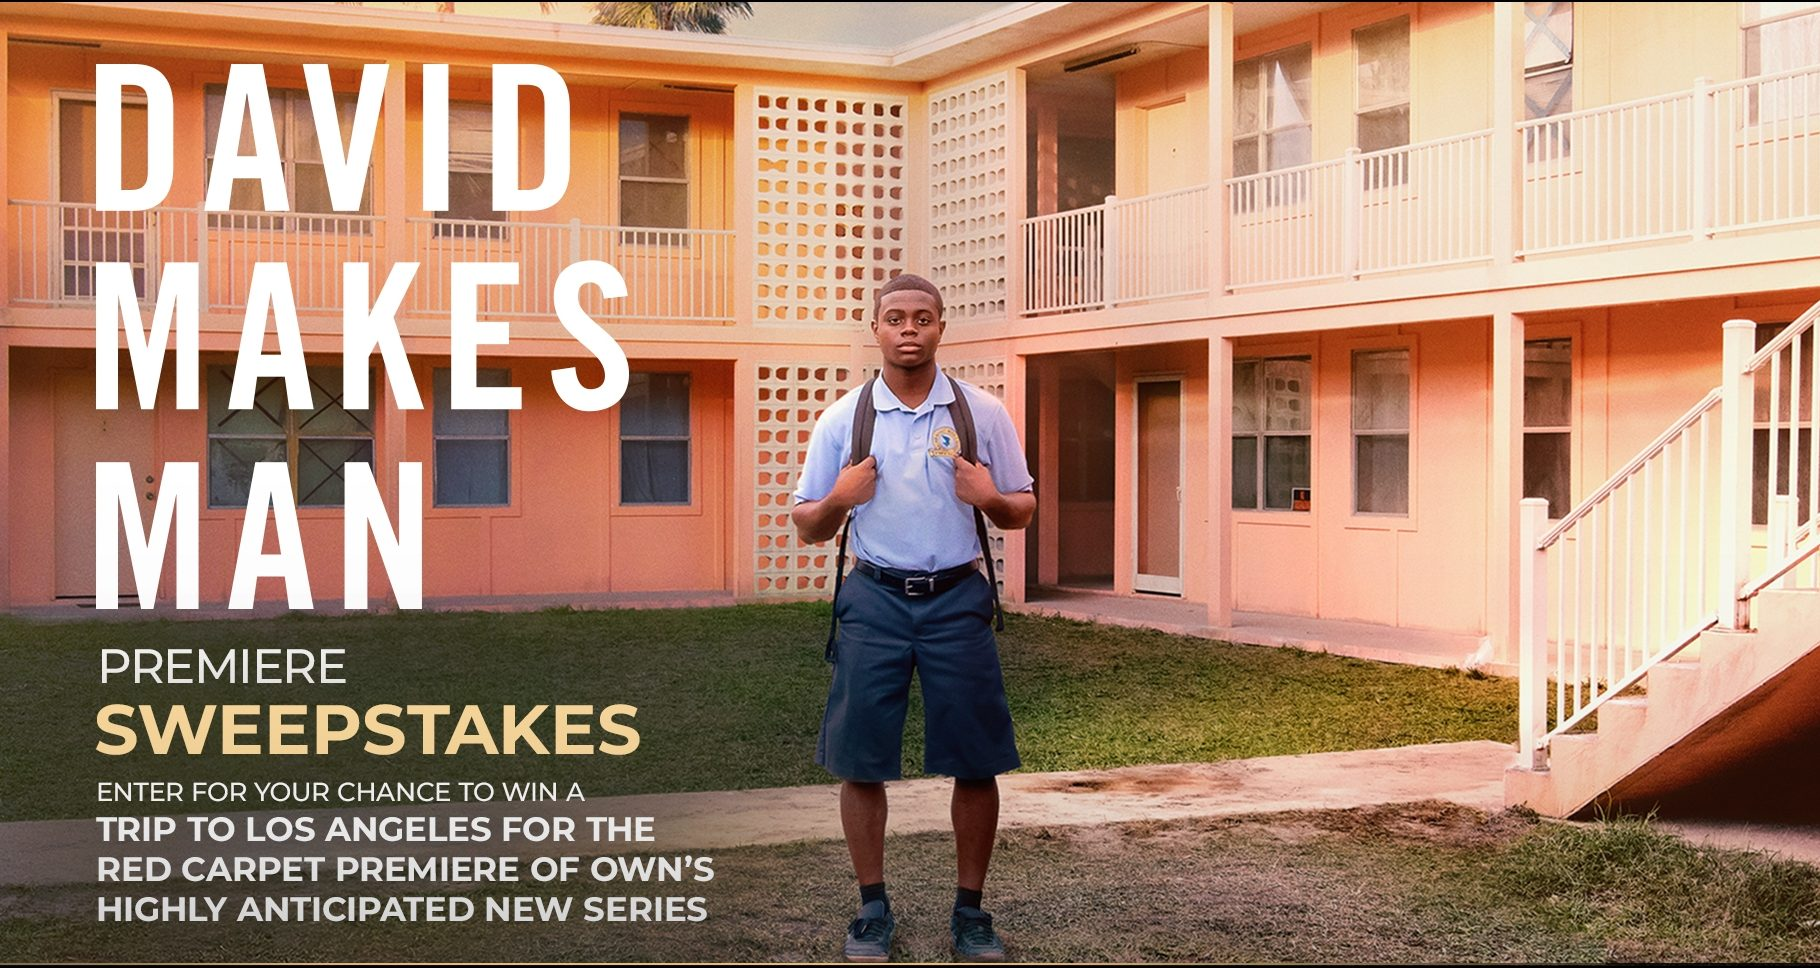 Click Here to get this week's code for your chance to win a trip to Los Angeles for the red carpet premiere of OWN's highly anticipated new series, David Makes Man